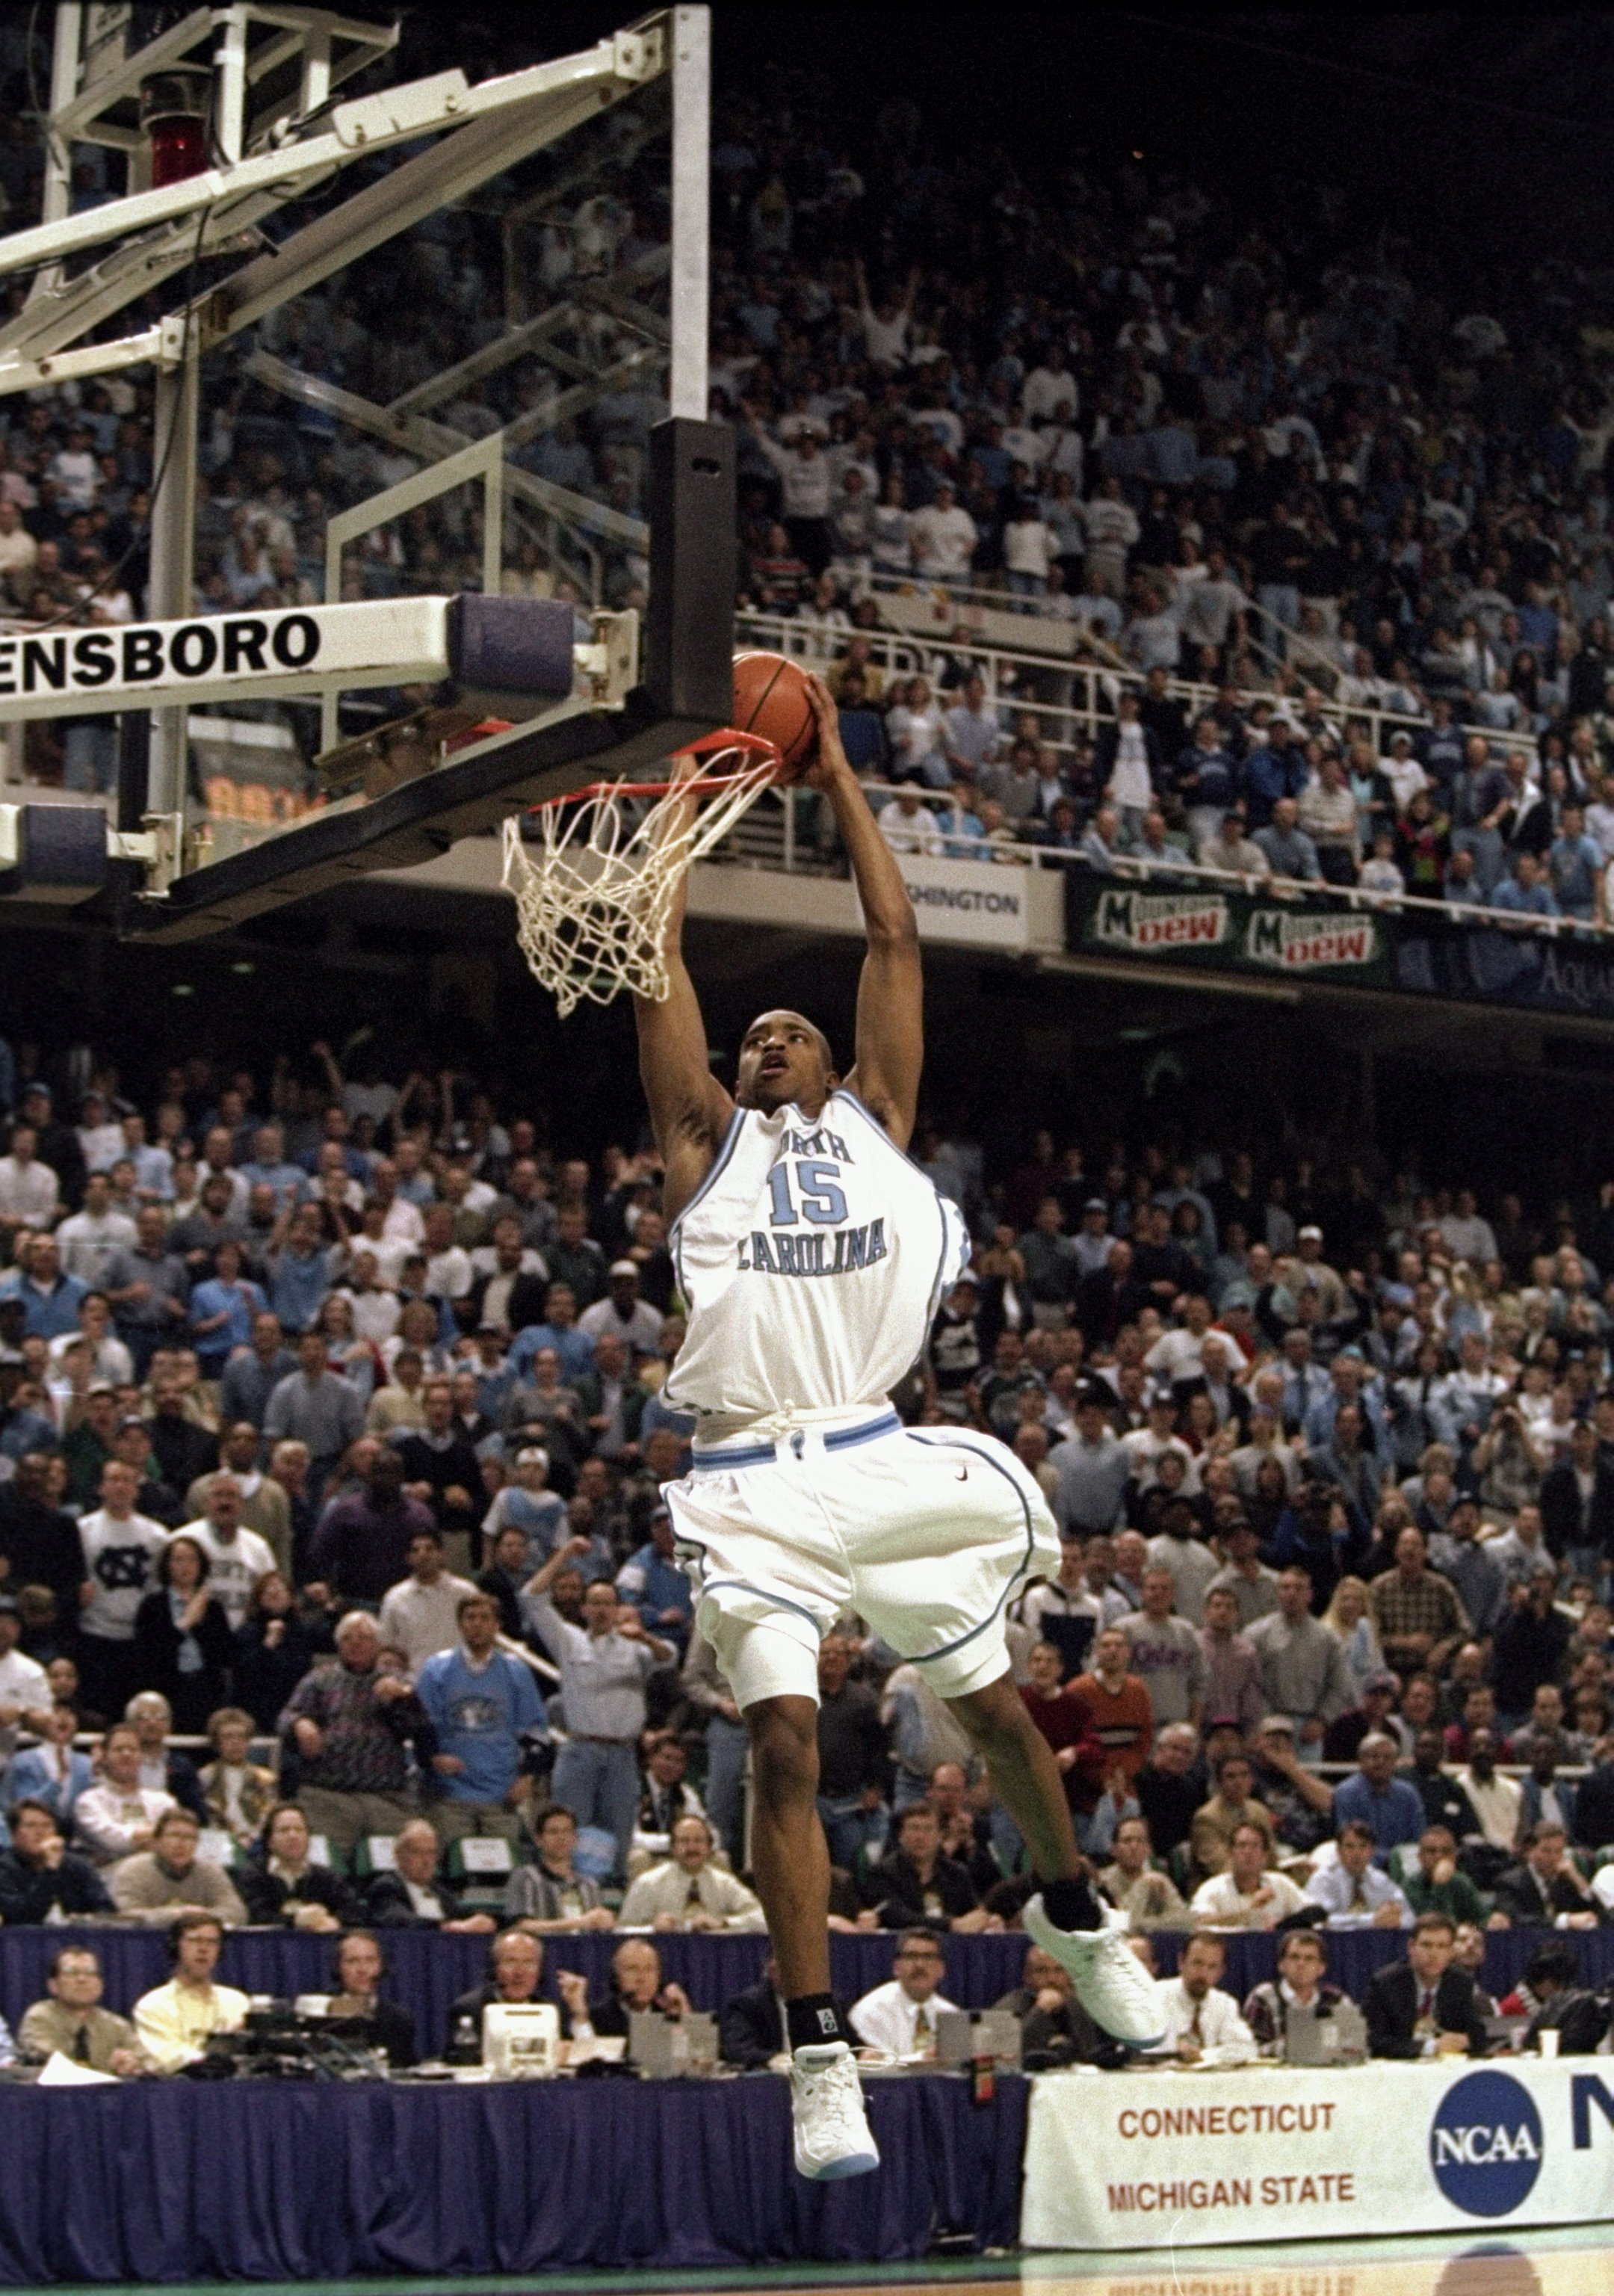 The high flying Vince Carter